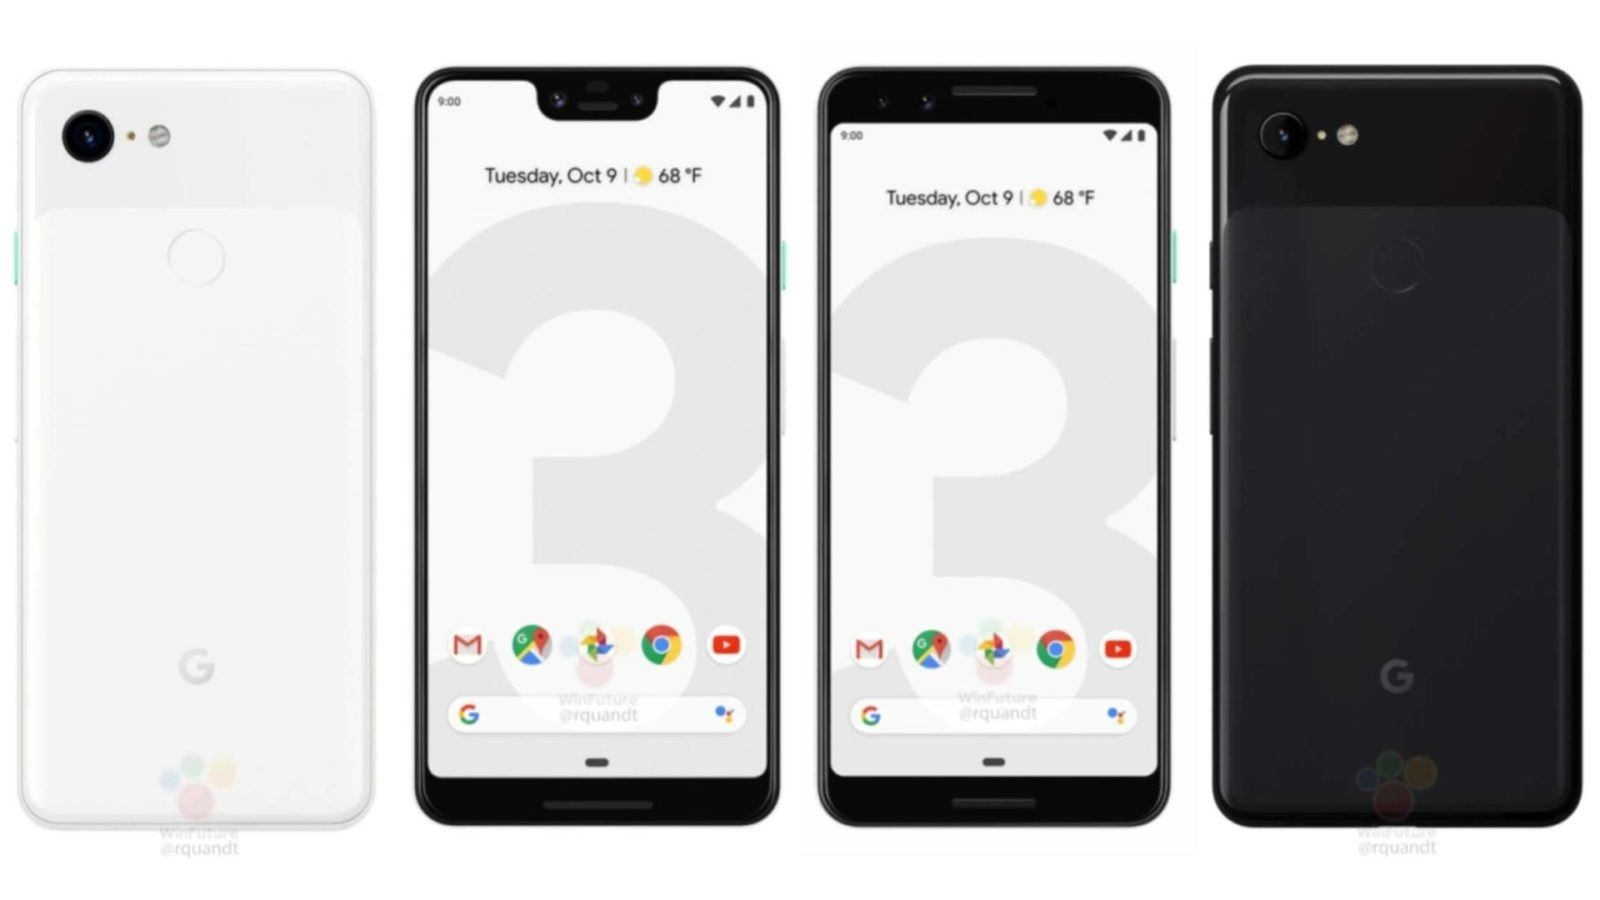 Today, we have got 28 new live wallpapers from Google Pixel 3 and